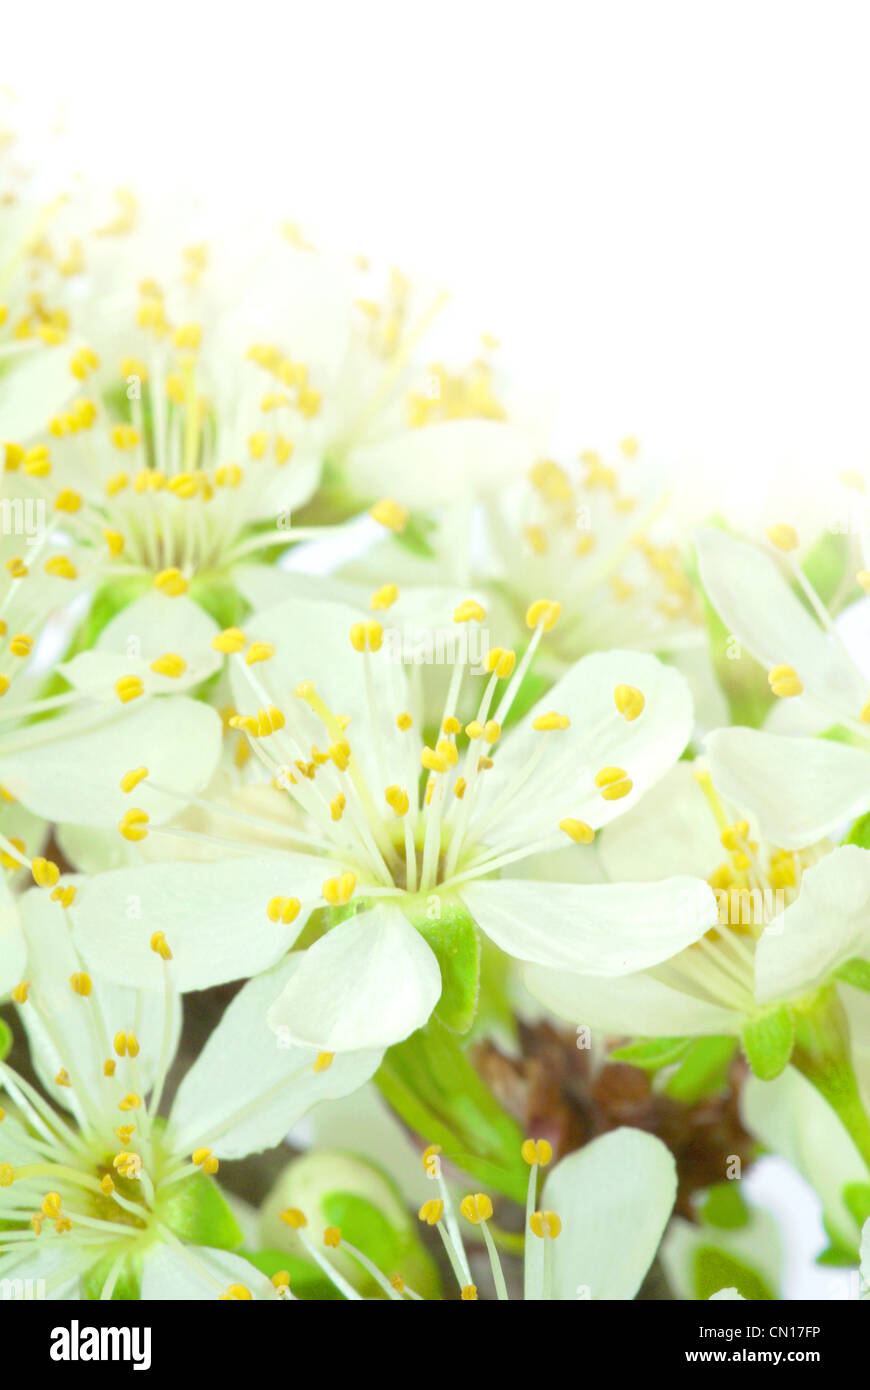 plum flowers merging with light background - Stock Image